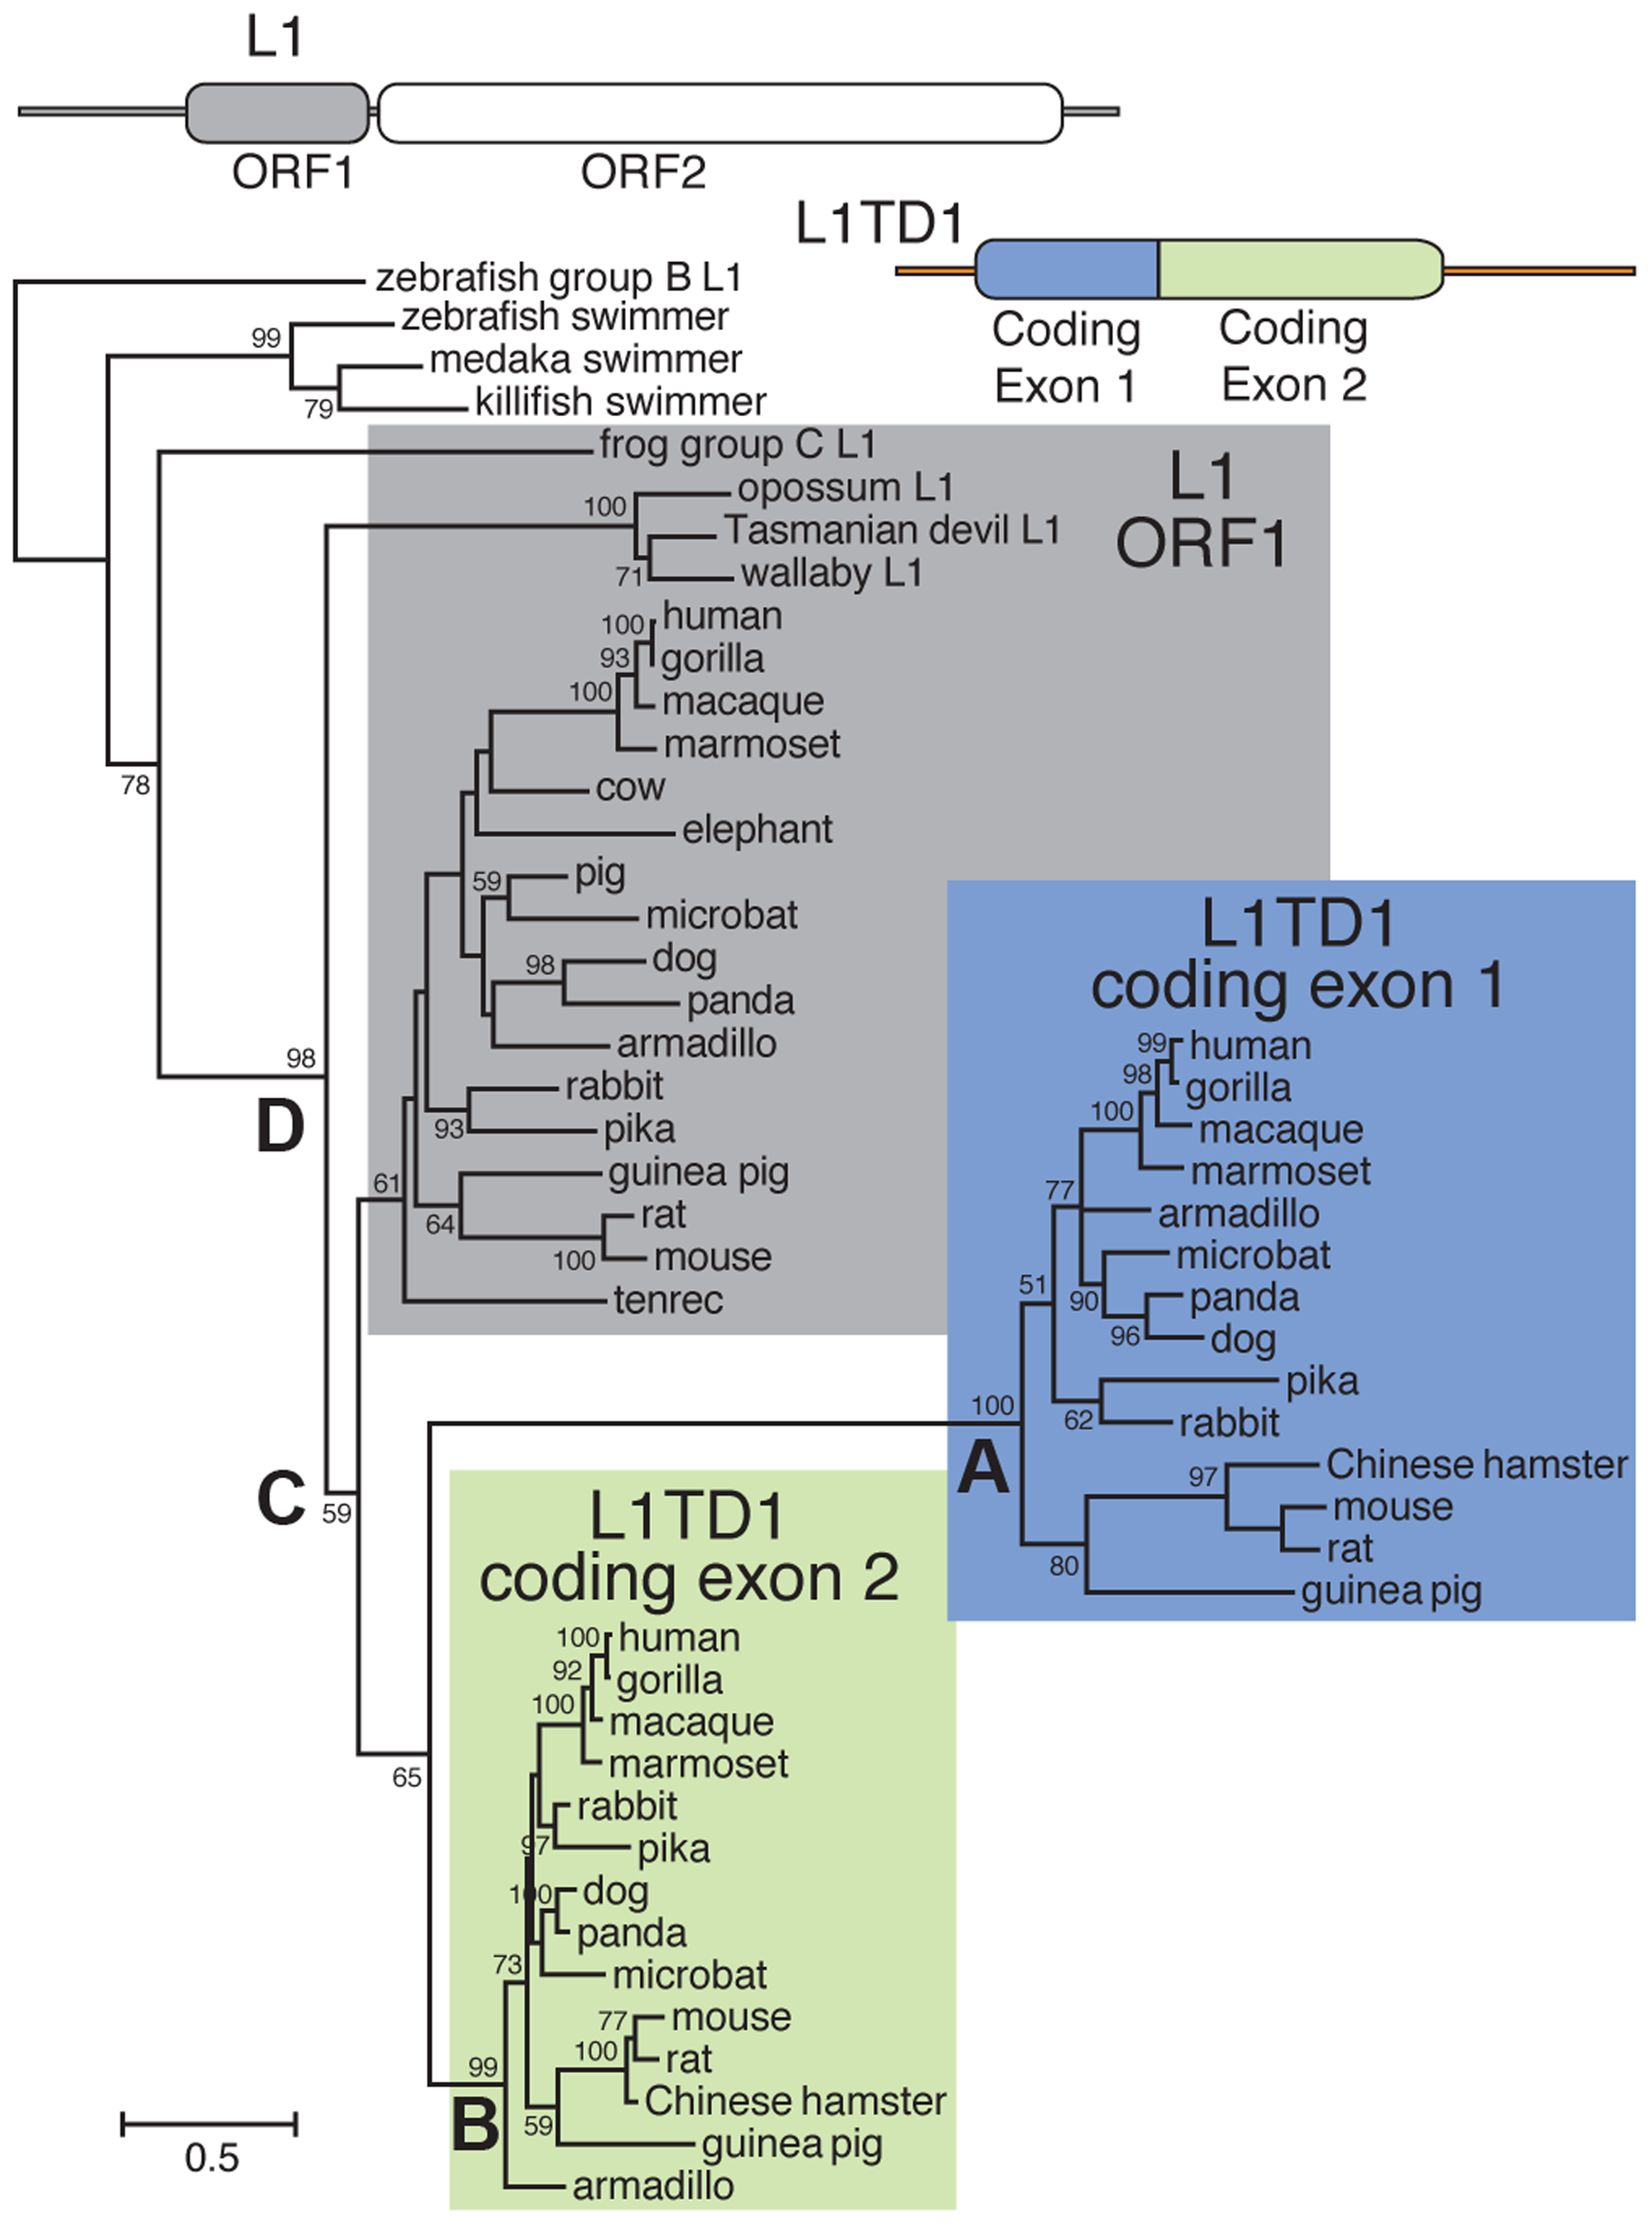 Phylogenetic tree of representative L1-ORF1p sequences and mammalian orthologs of the two <i>L1TD1</i> ORF1p-like regions.